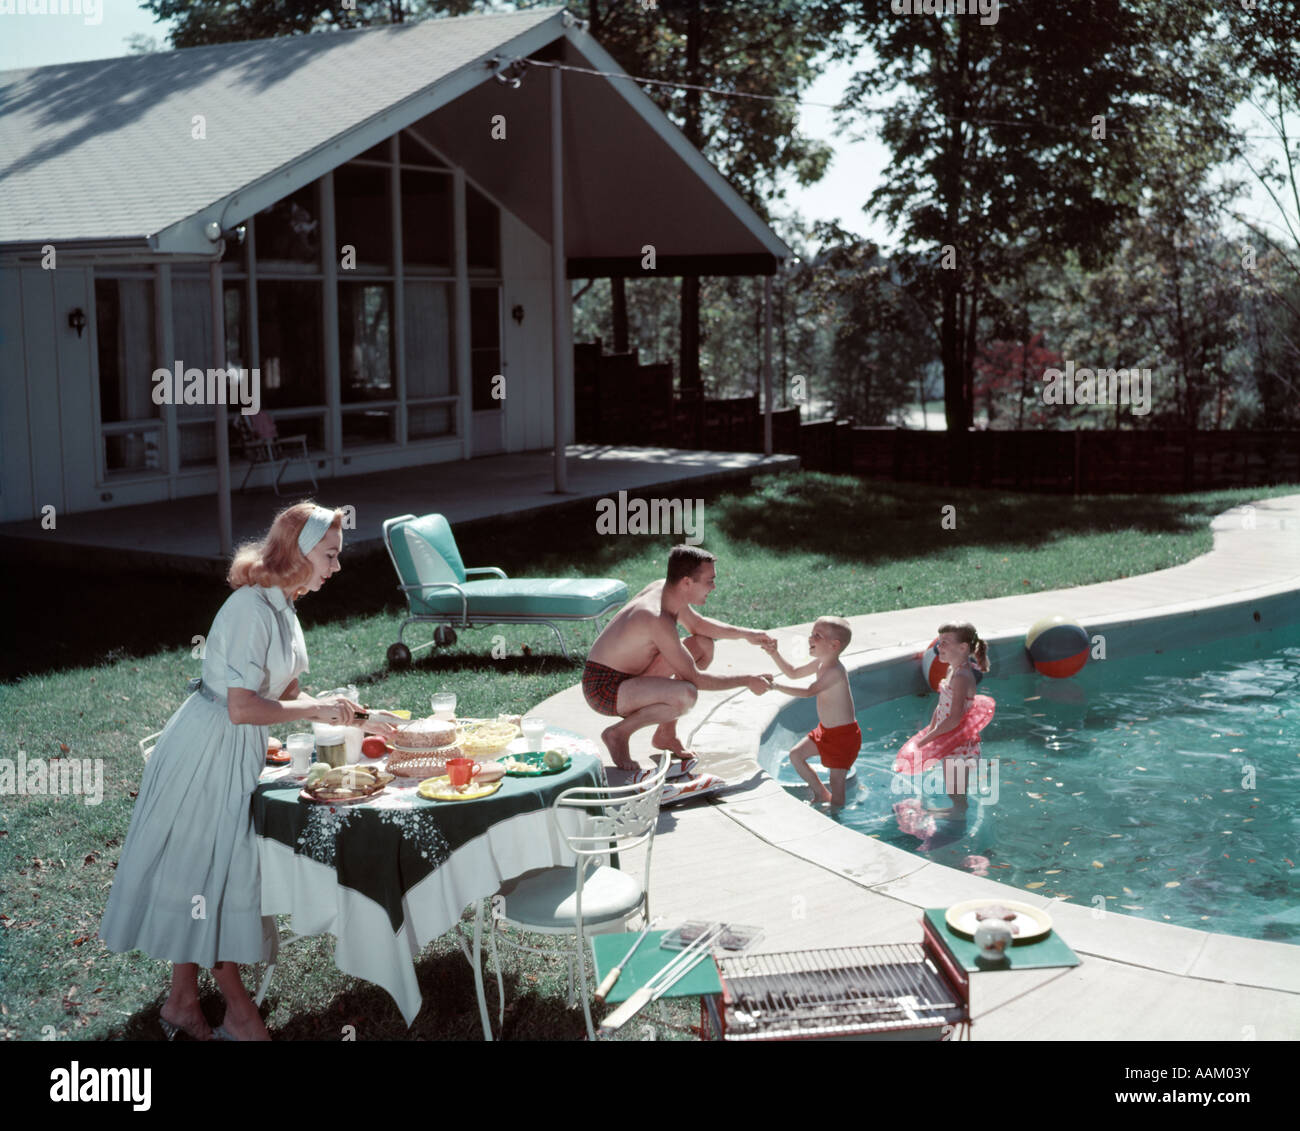 1950s family of 4 backyard swimming pool house mom serving food